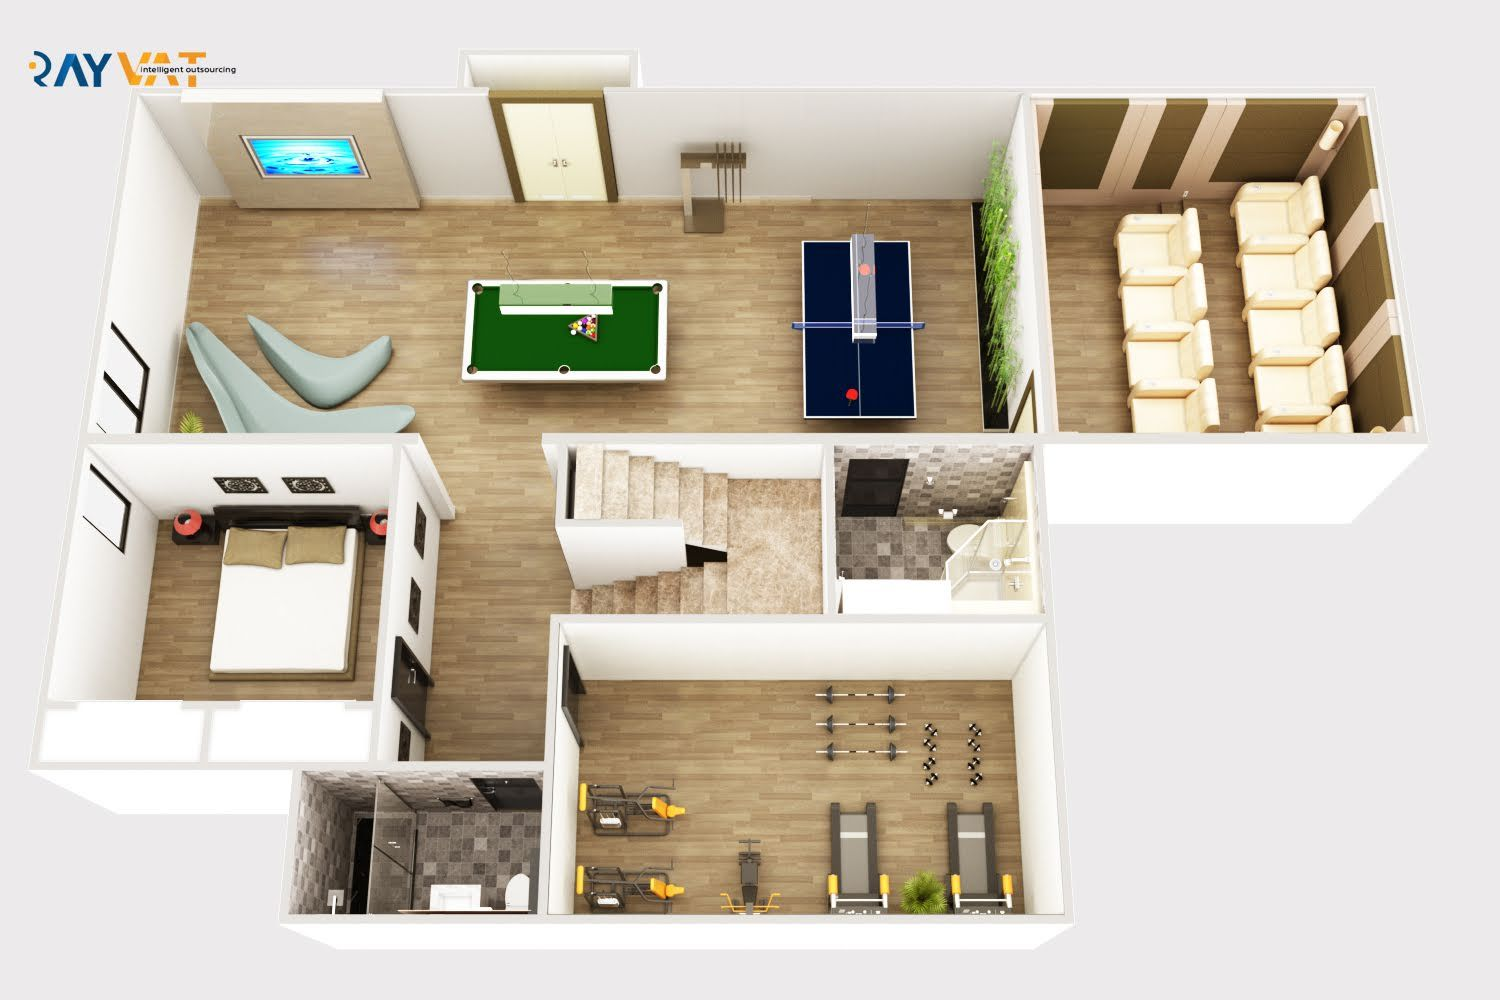 3d Basement Plan With Activity Area Gym And Home Theatre Architectural Floor Plans Rendered Floor Plan Floor Plans